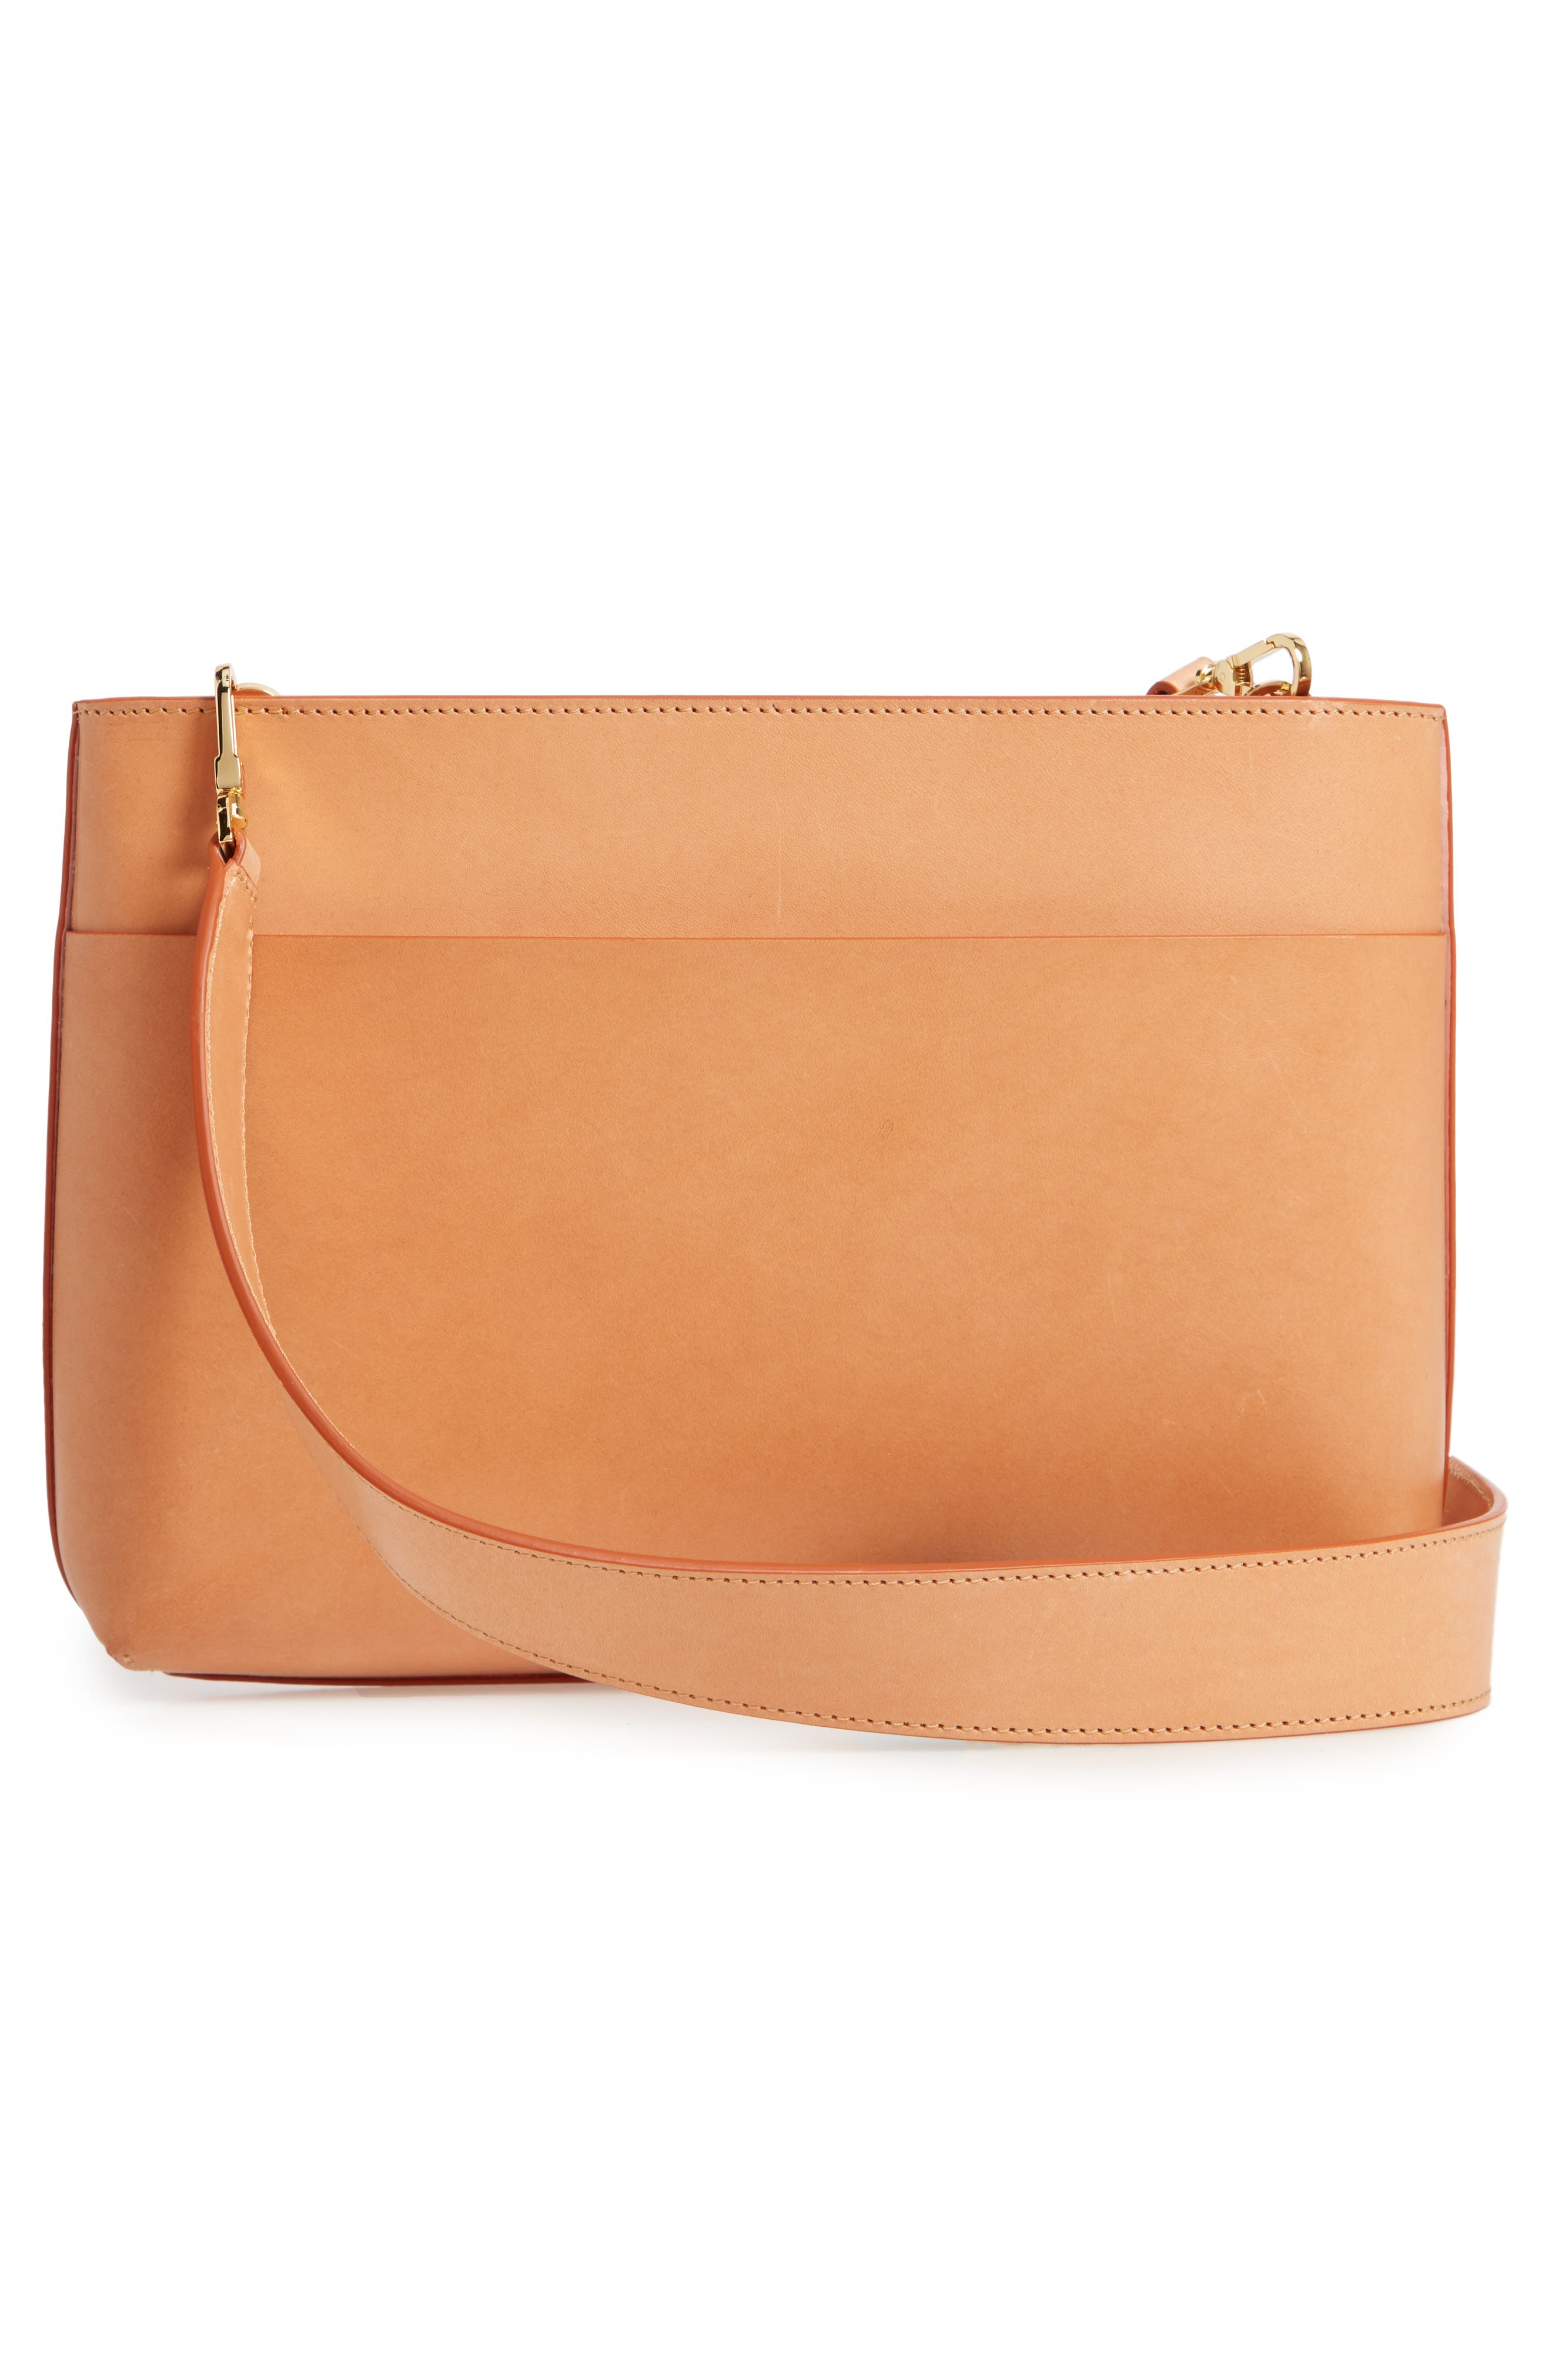 MANSUR GAVRIEL, Logo Leather Crossbody Bag, Alternate thumbnail 3, color, 250